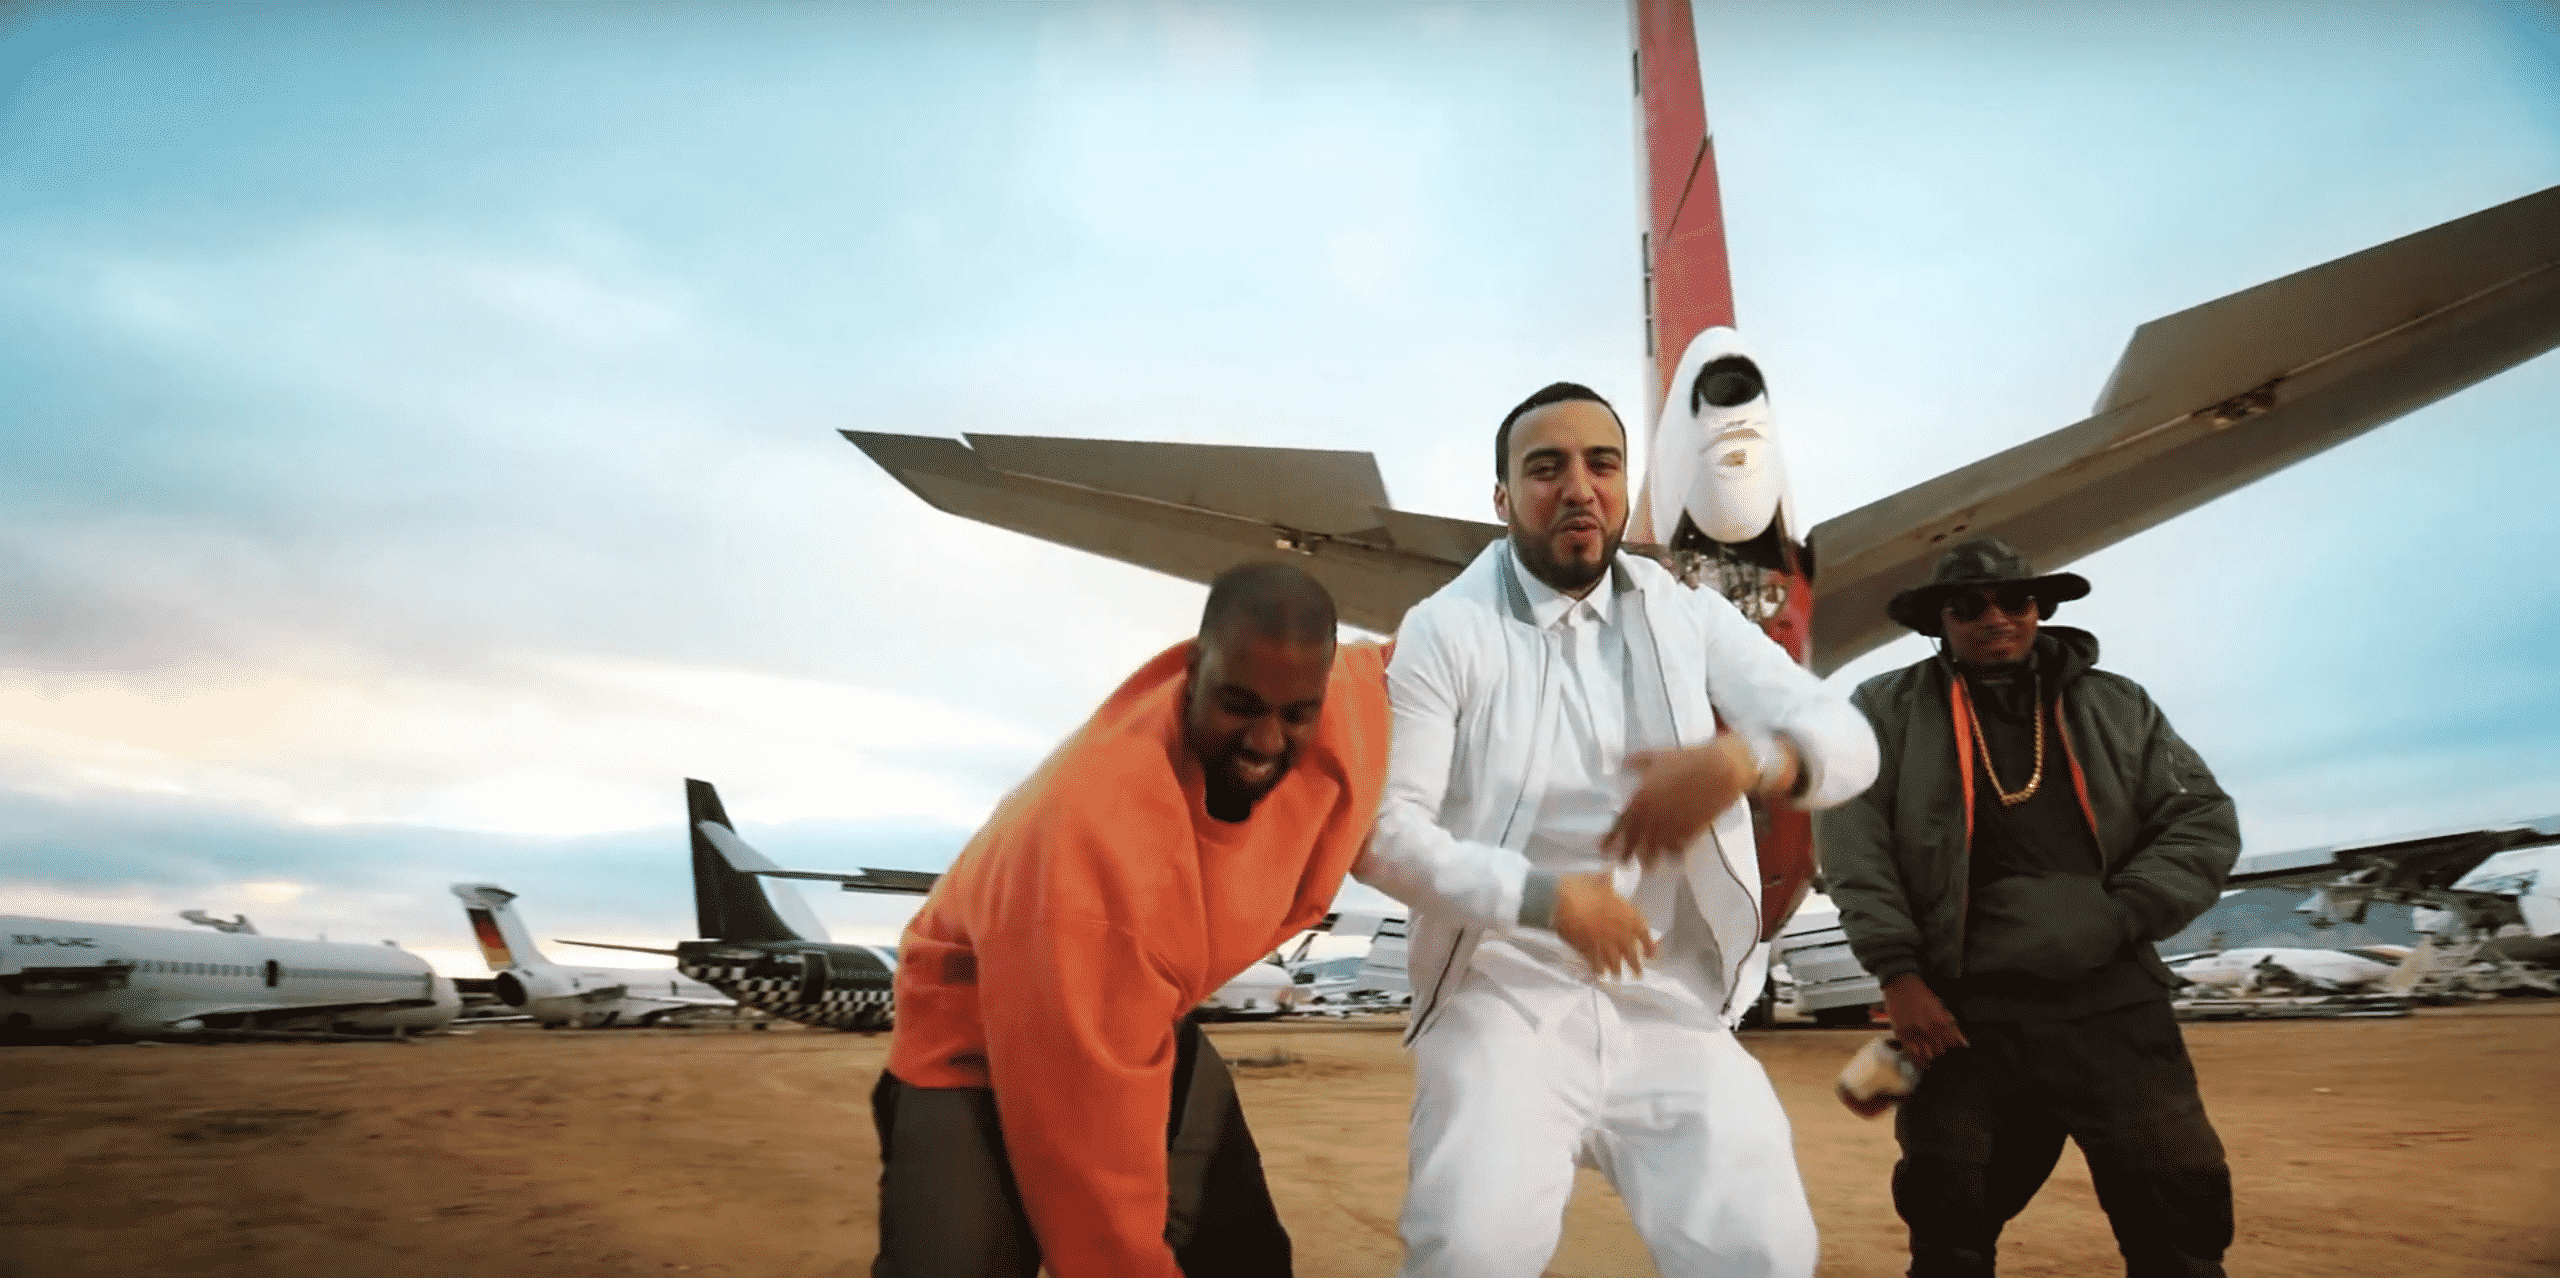 image french montana clip figure it out